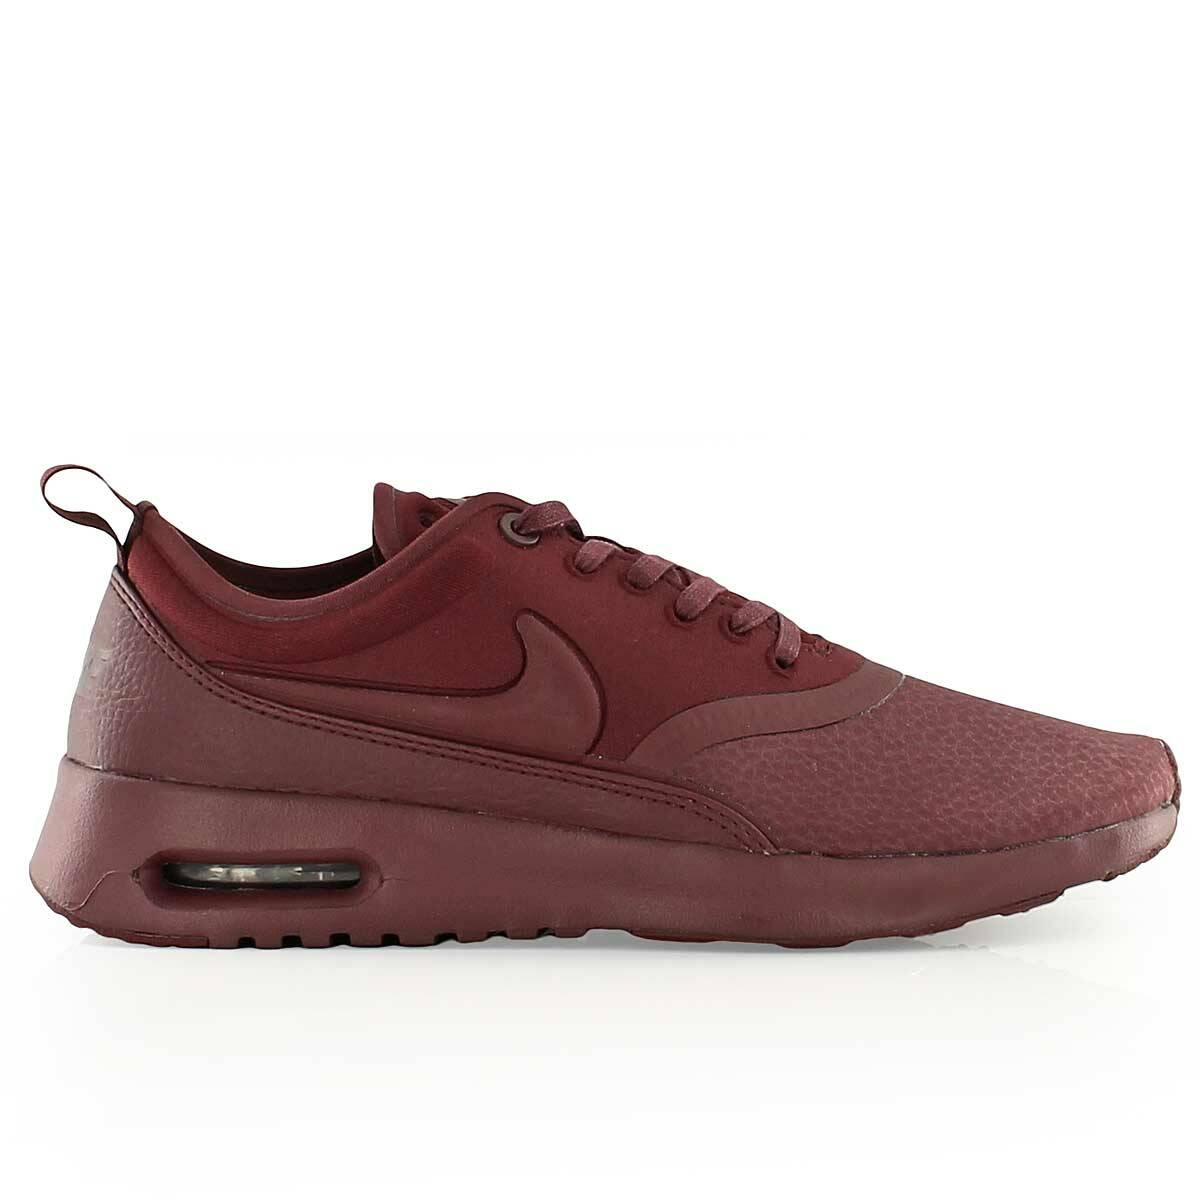 Nike Air Max Thea Ultra Premium (BordeauxRot) 848279 600